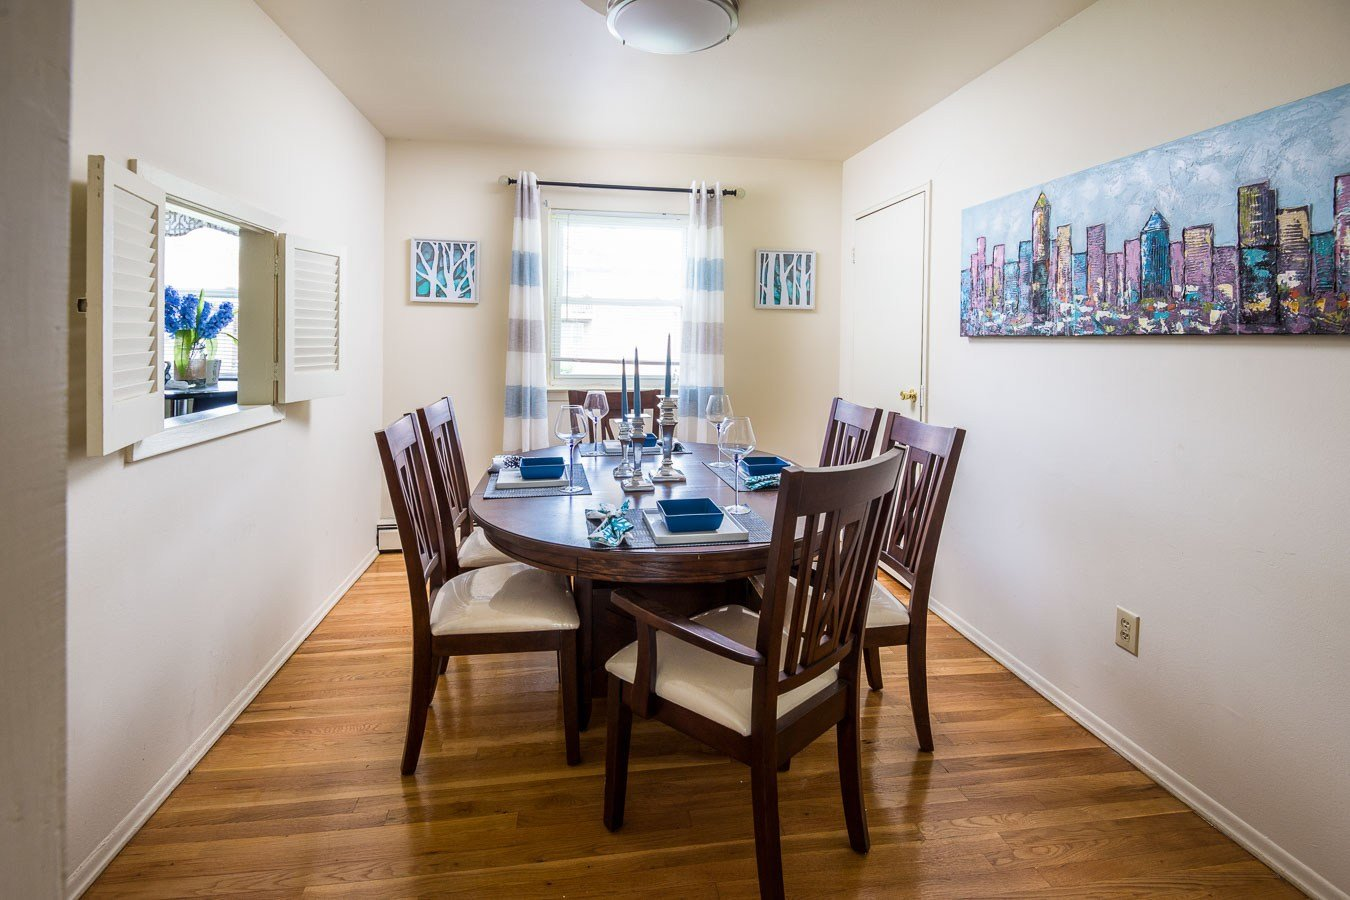 Best 1 Bedroom Apartment In Old Bridge Nj For Rent Stratford Apartments With Pictures